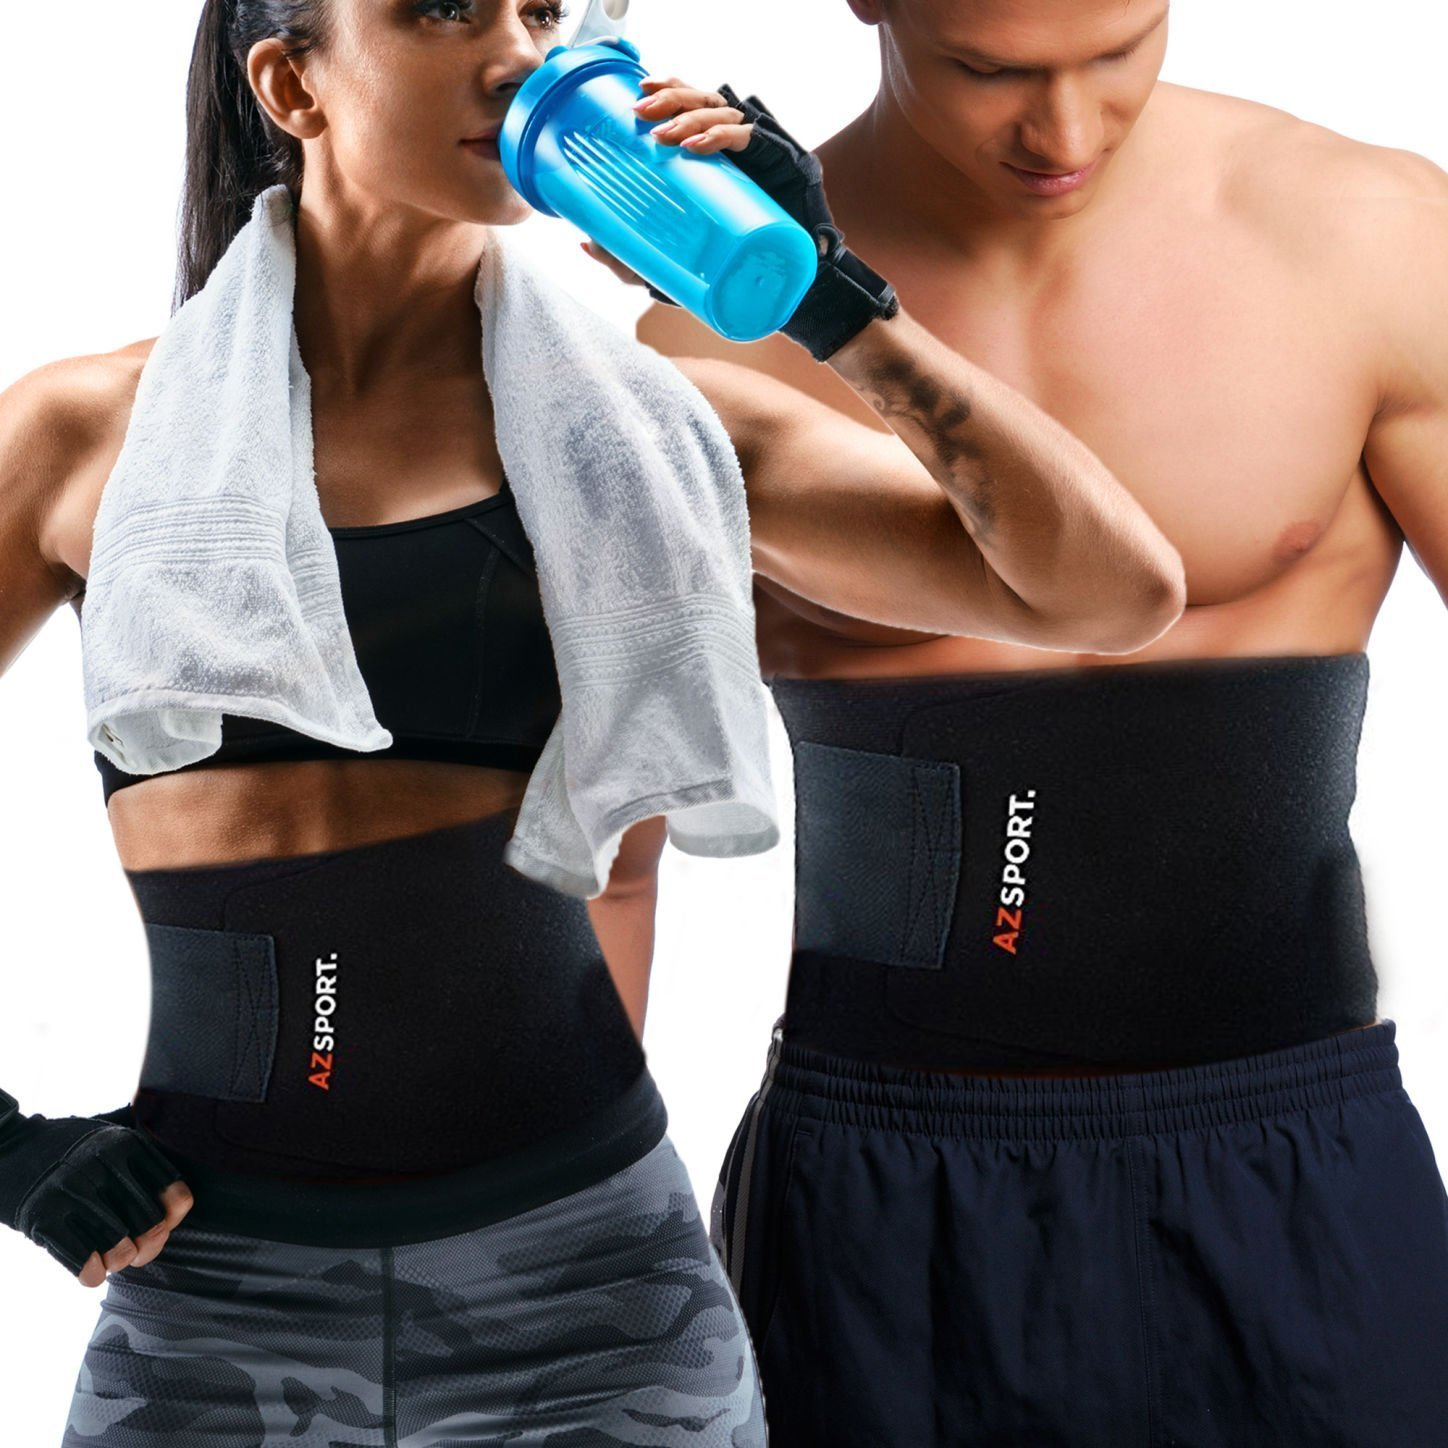 6d65711992c7c Get Quotations · AZSPORT Waist Trimmer - Adjustable Ab Sauna Belt to shed  the excess Water